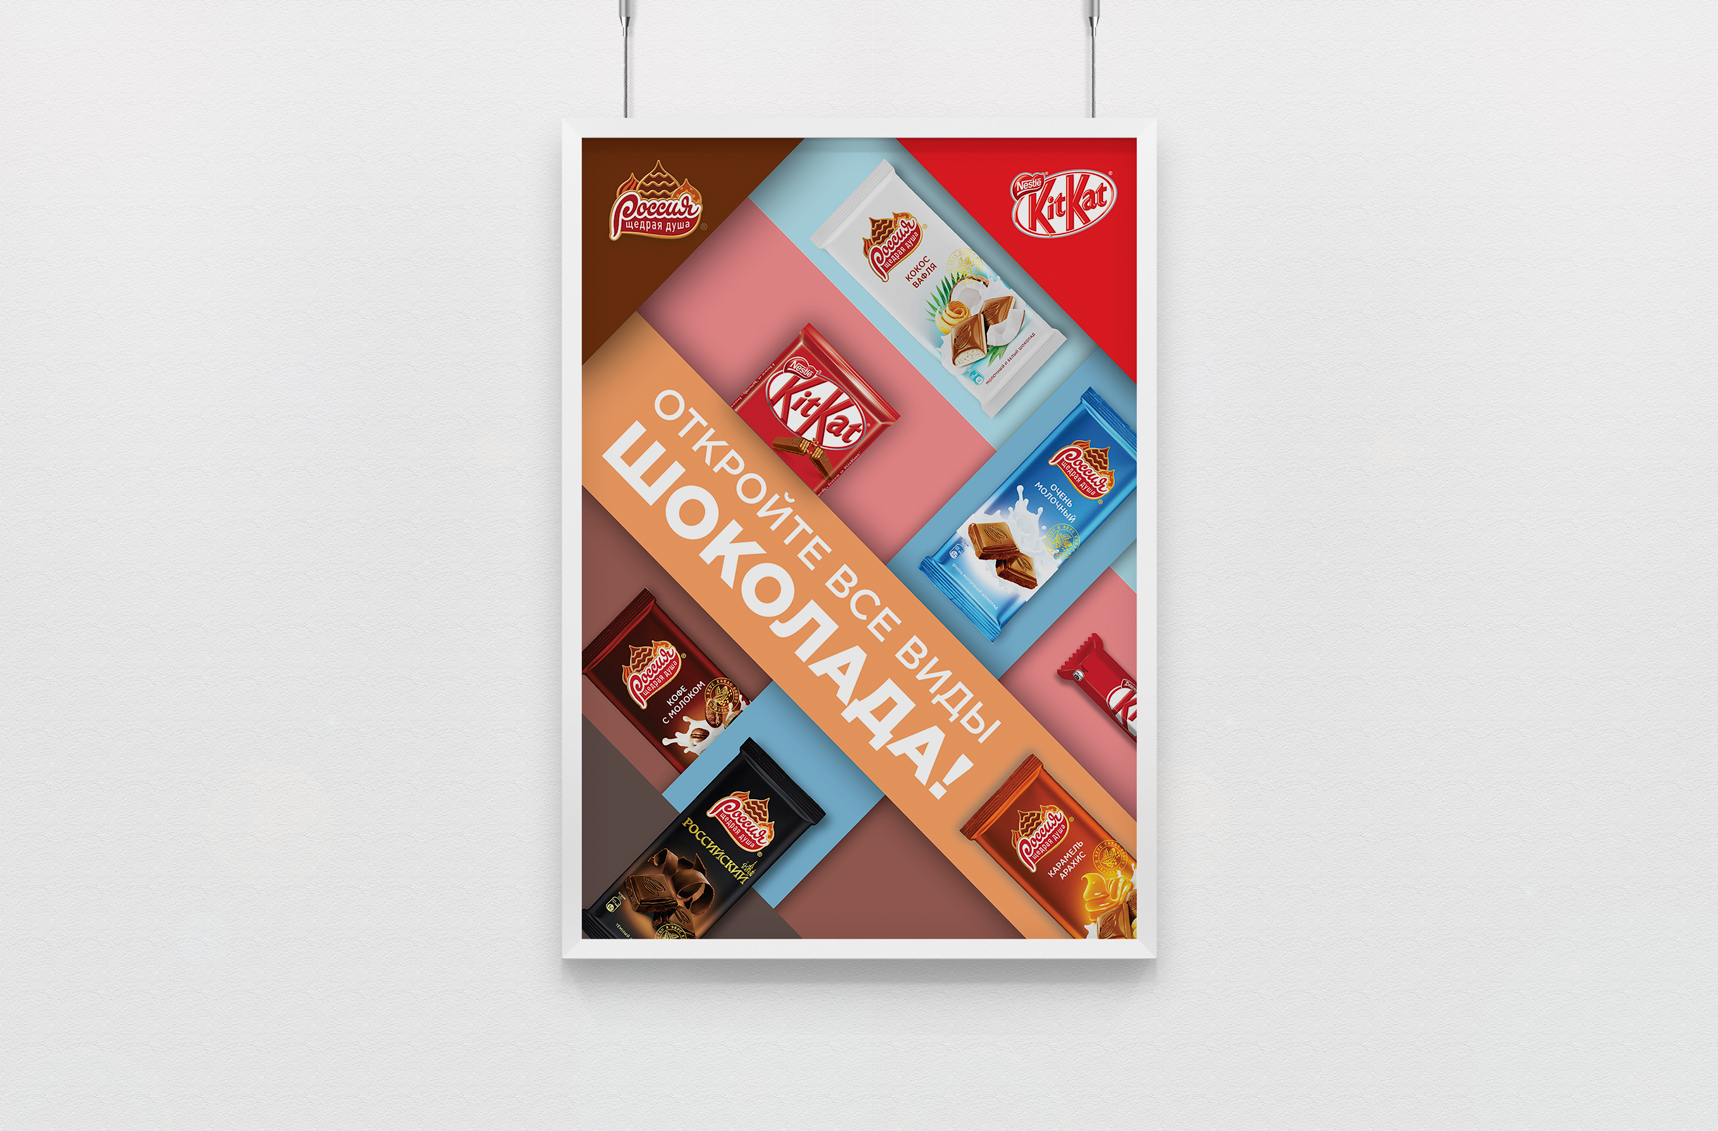 New_confectionery_RshD_Kitkat_v2_2